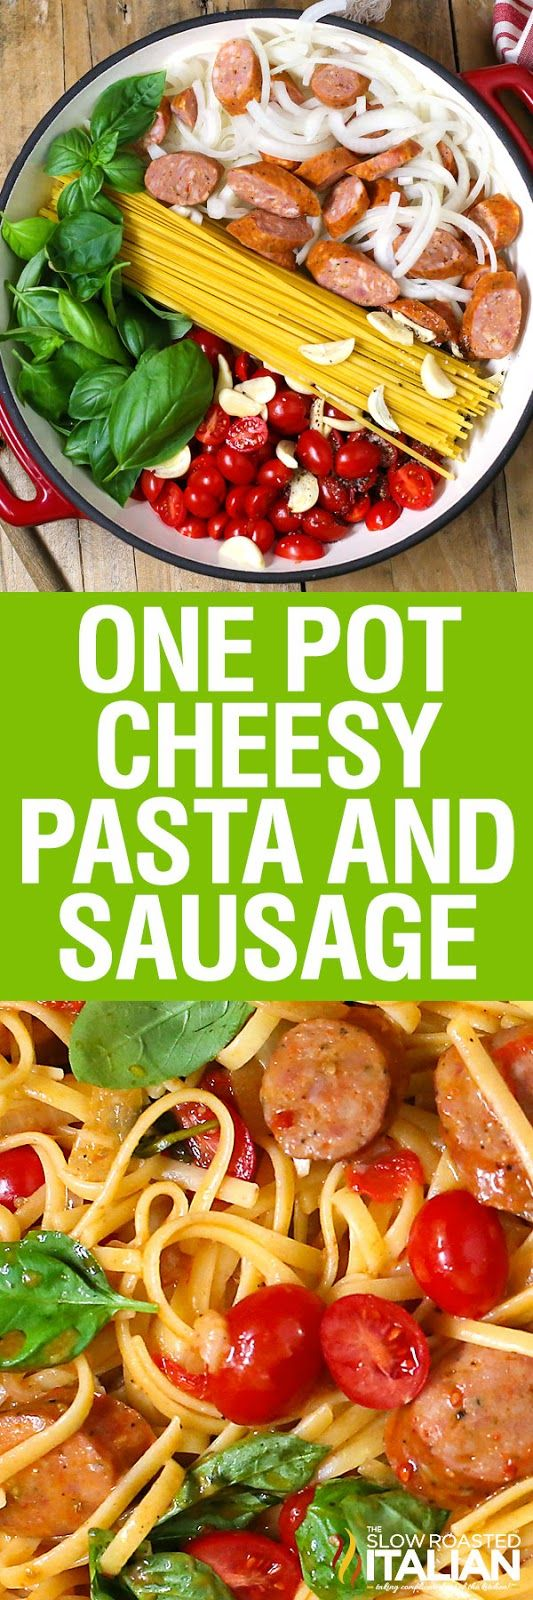 Toss it all in a pot and let it cook. This creamy, cheesy tomato basil sauce cooks right into the pasta in this amazing One-Pot Pasta!